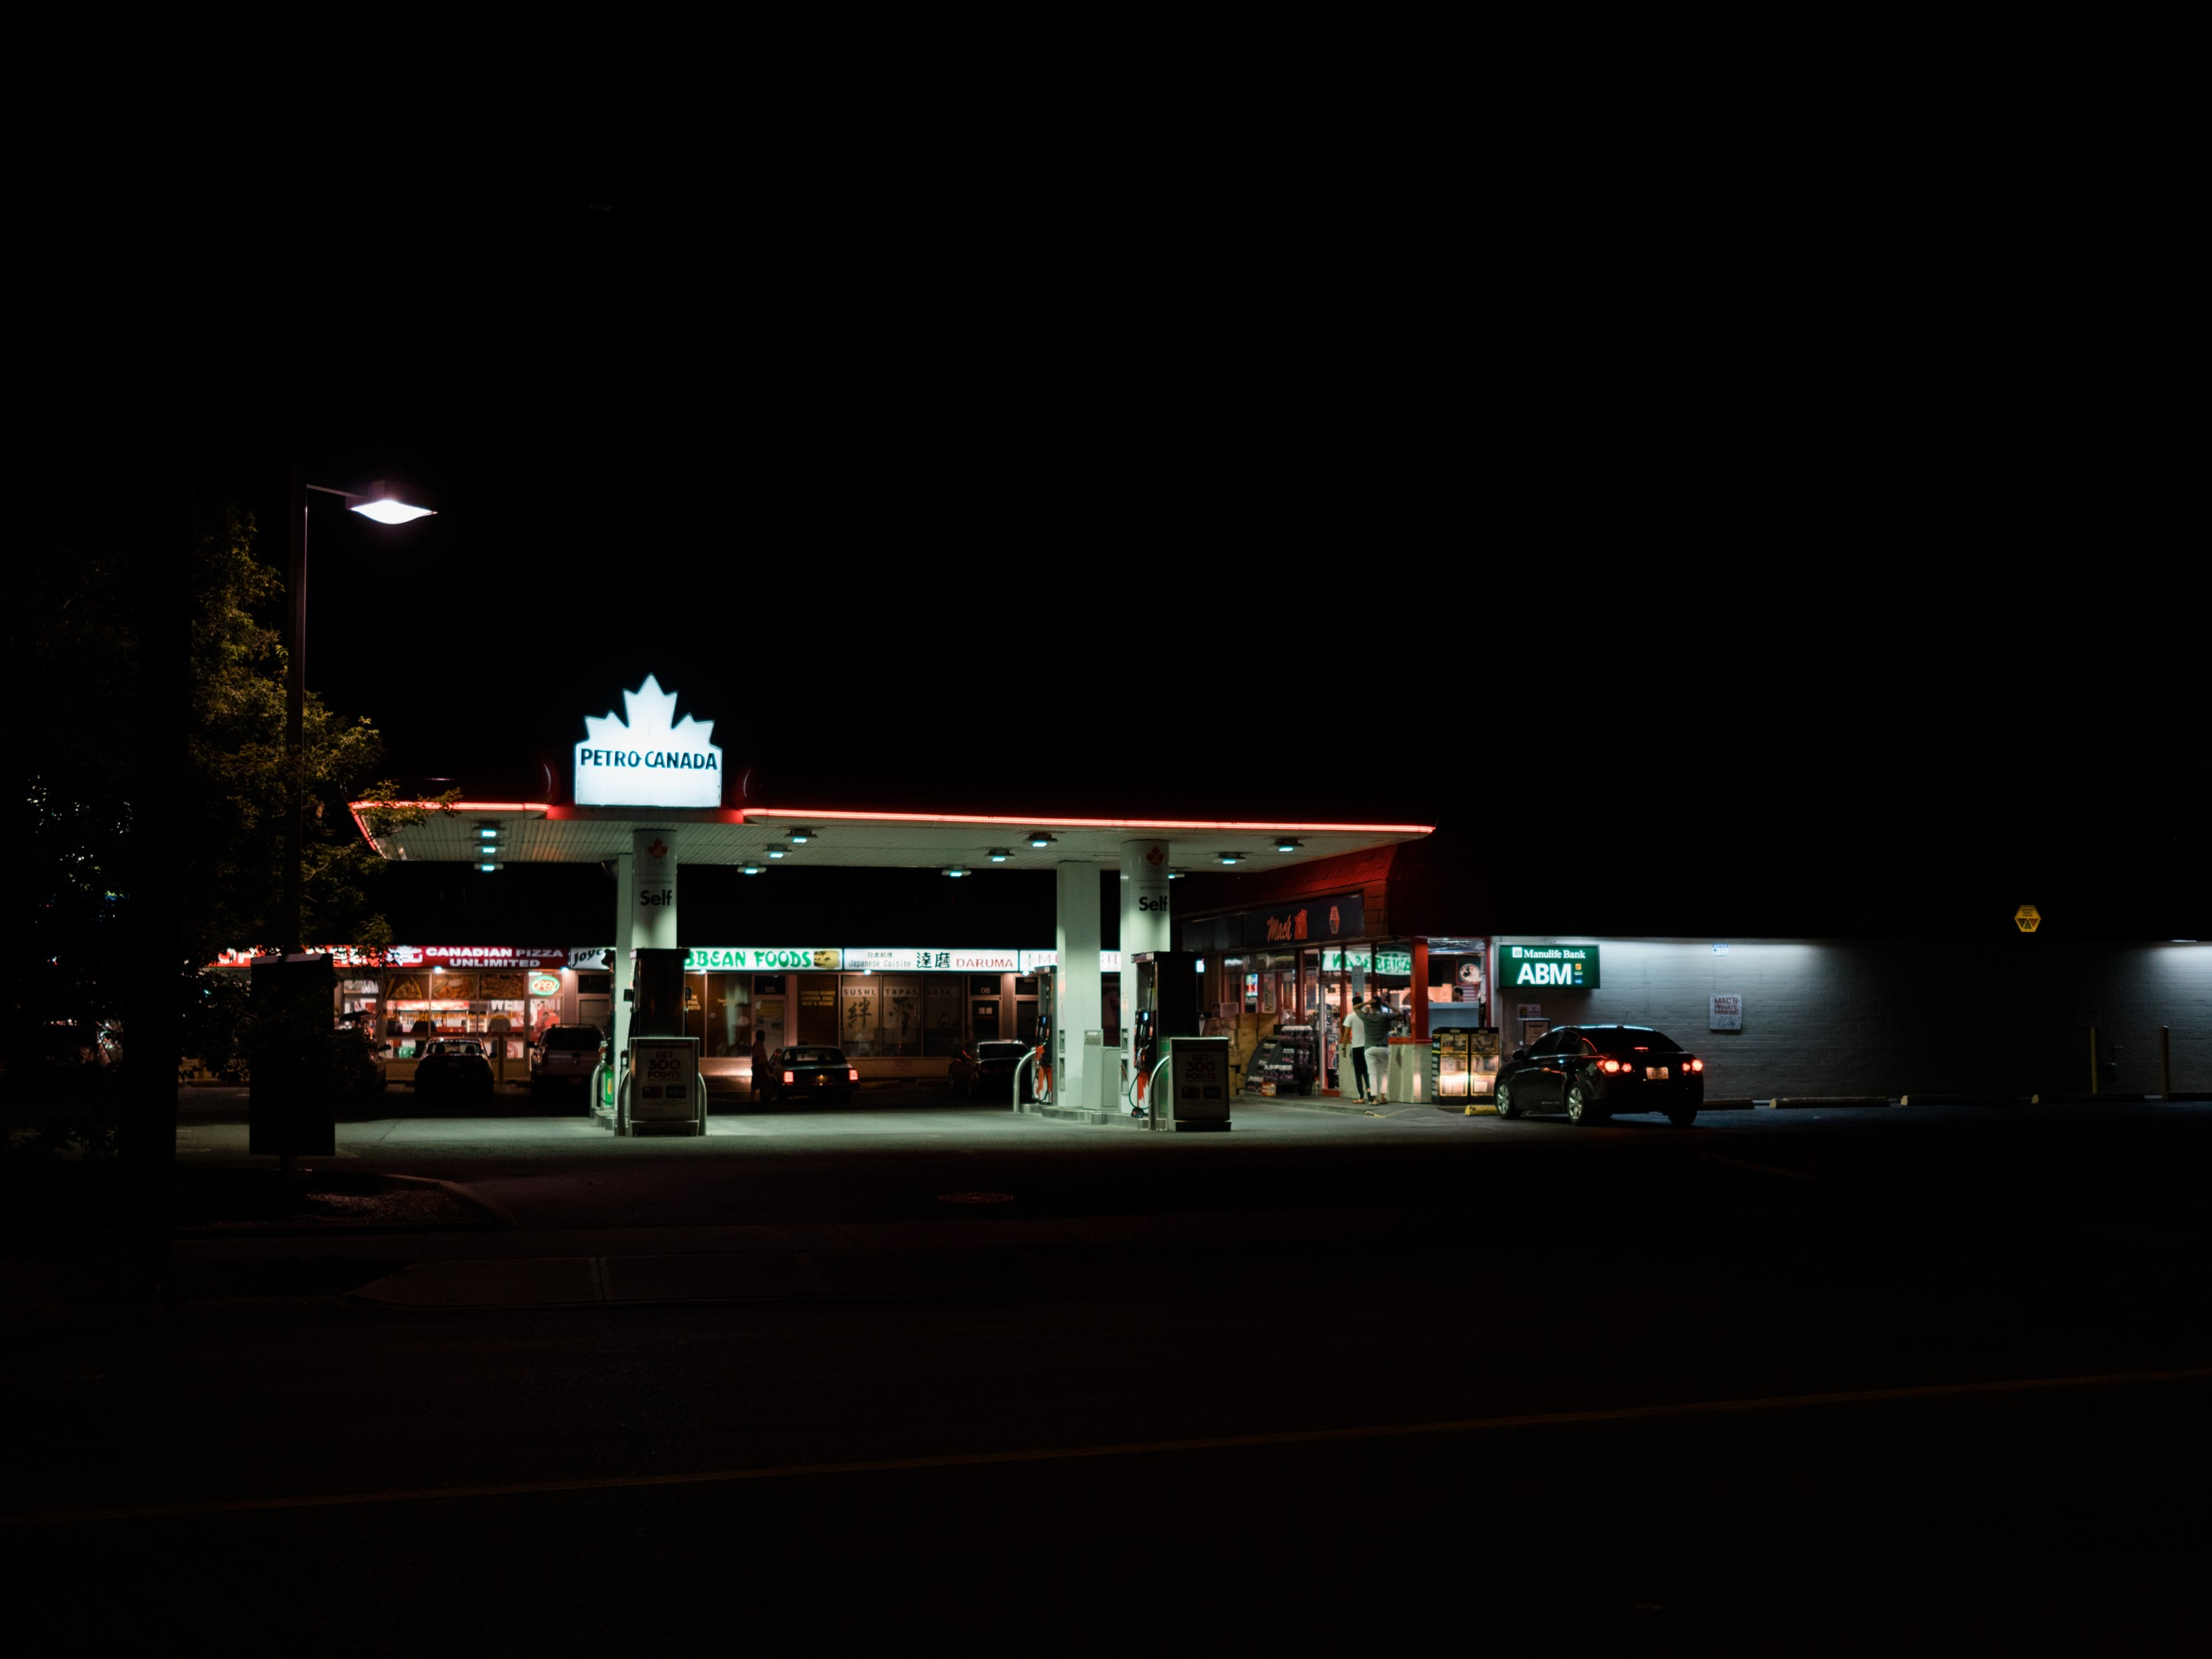 There are two gas stations along my typical photo walk route so it's easy to see what's up at both.